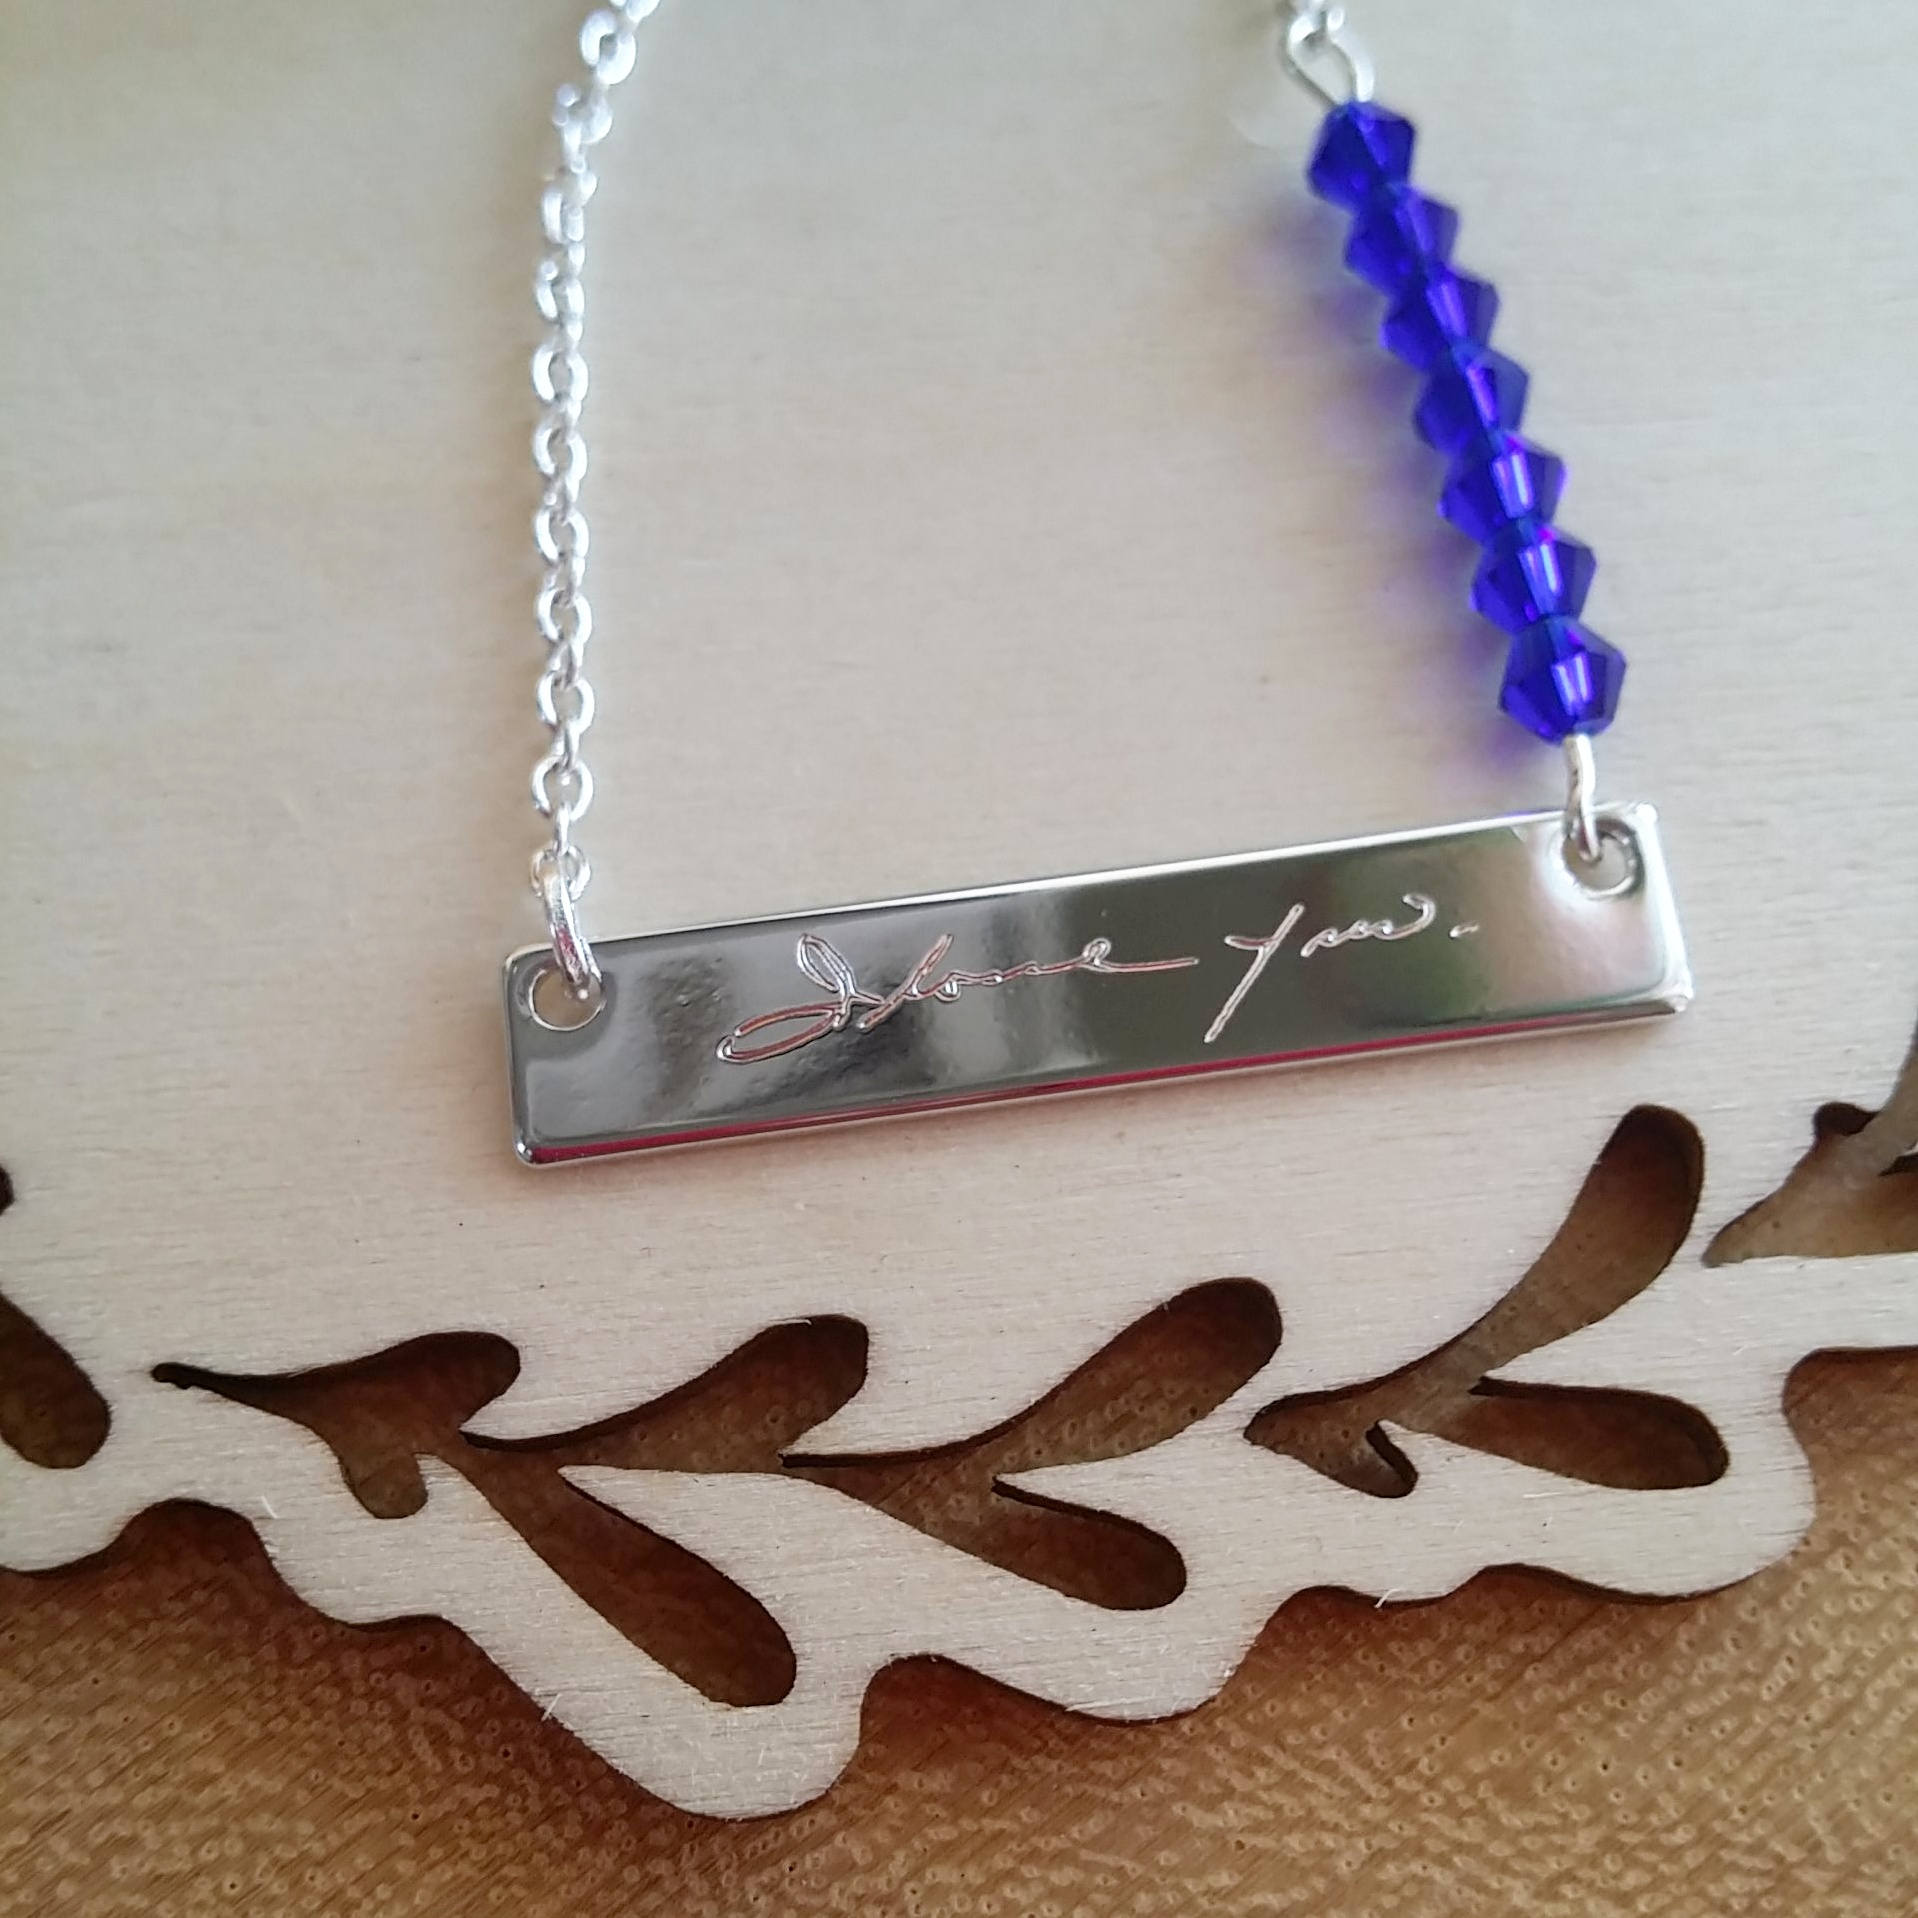 prev & Mothers day gift Actual Handwriting necklace Personalized ...